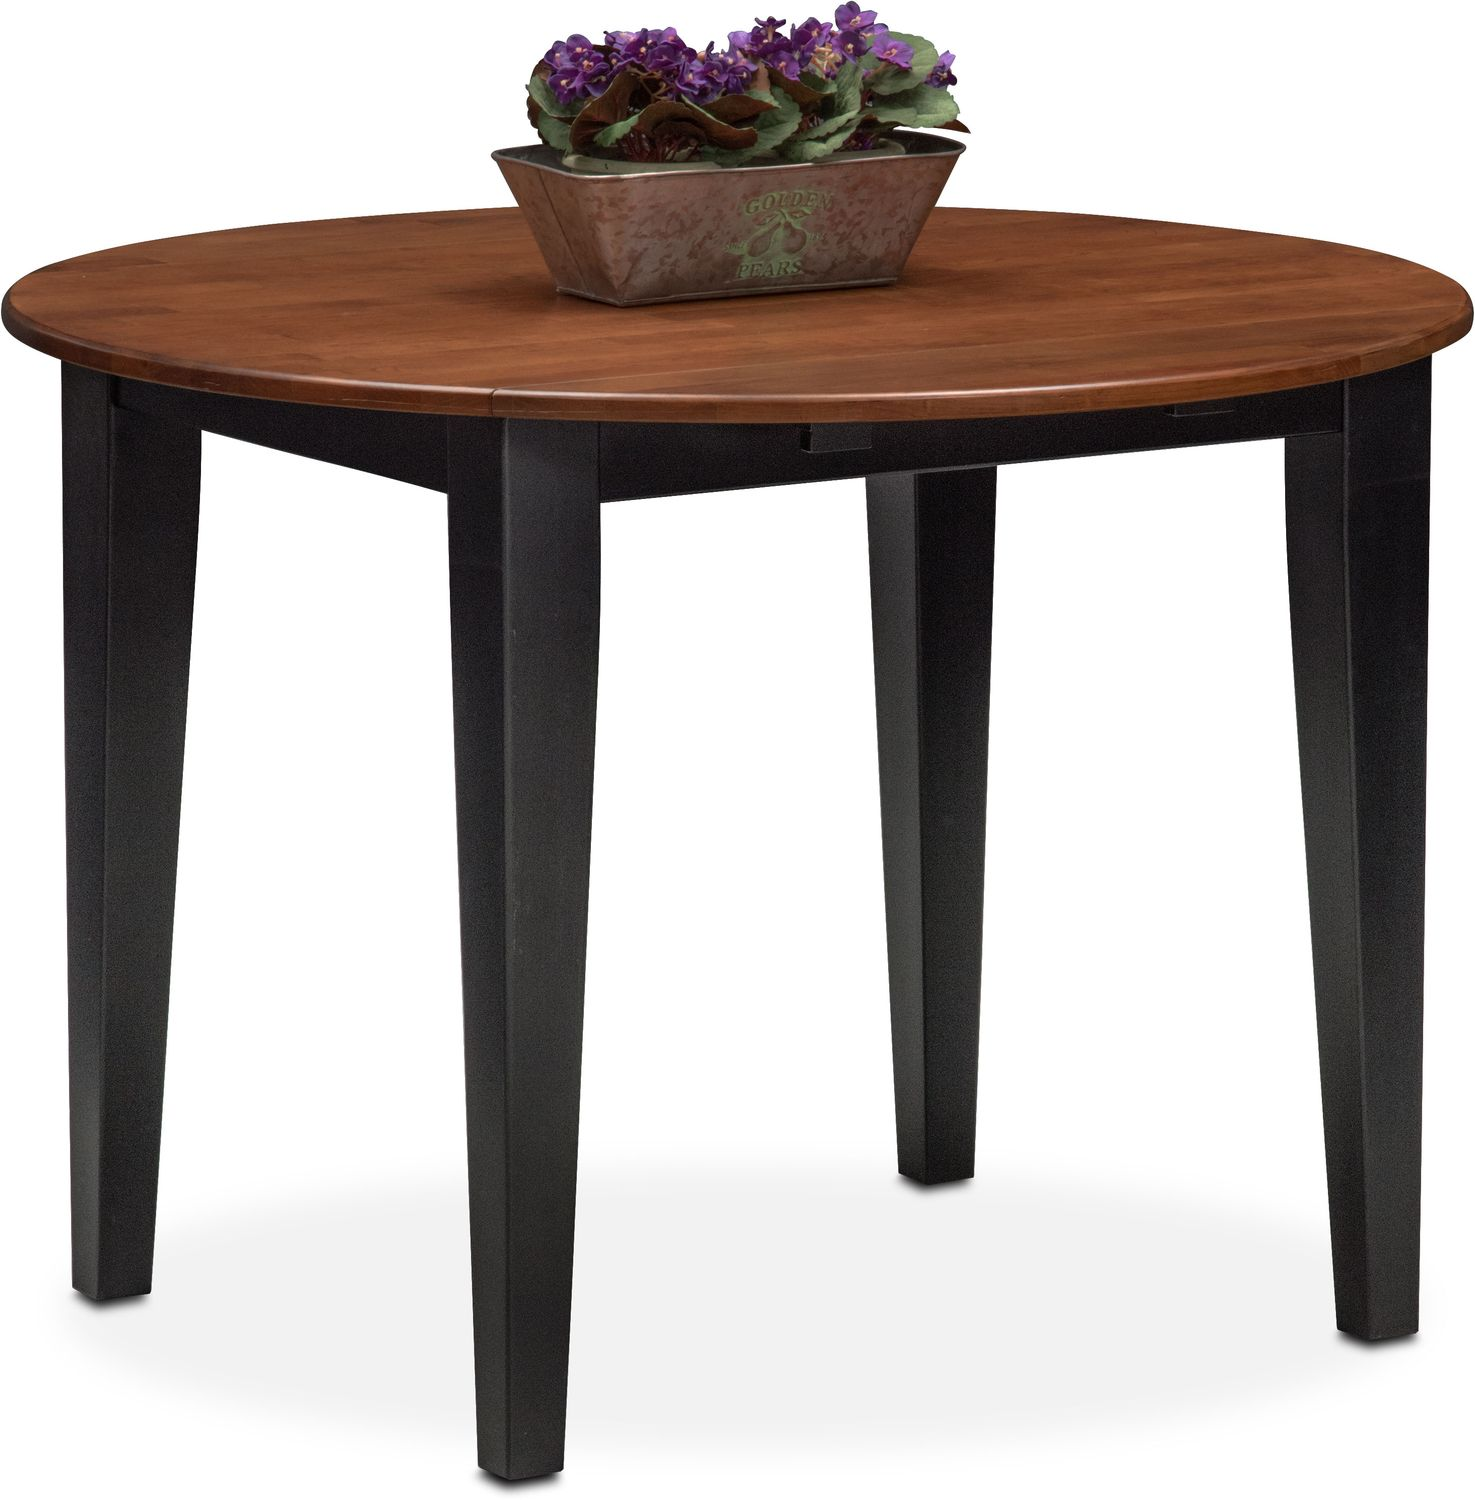 Dining Room Furniture - Nantucket Drop-Leaf Table - Black and Cherry